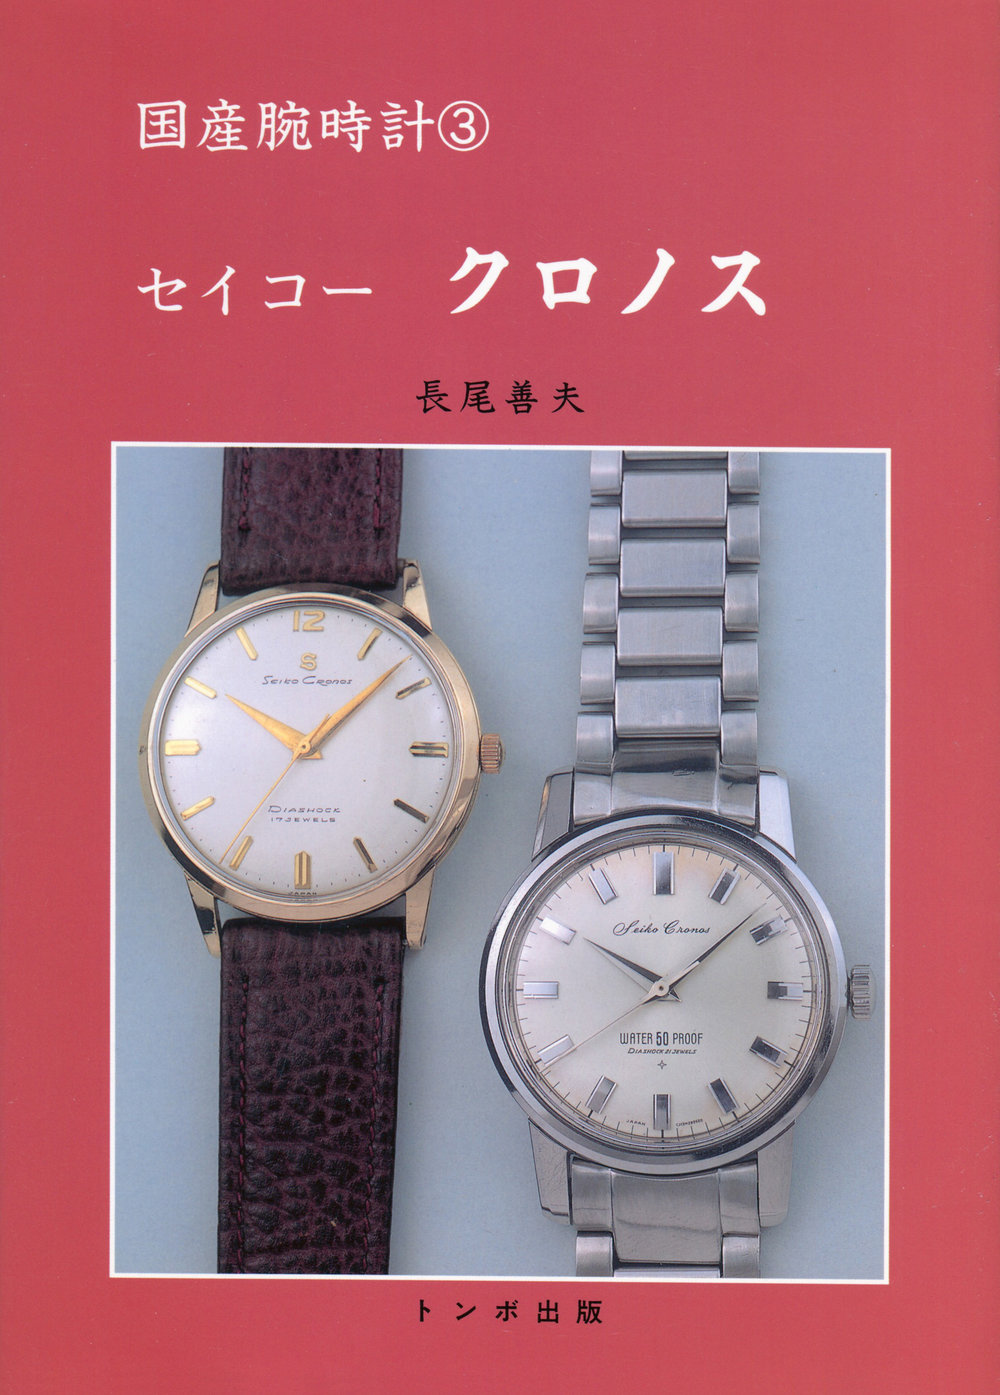 COVER -   DOMESTIC WATCH VOLUME  3 COVER -   DOMESTIC WATCH VOLUME